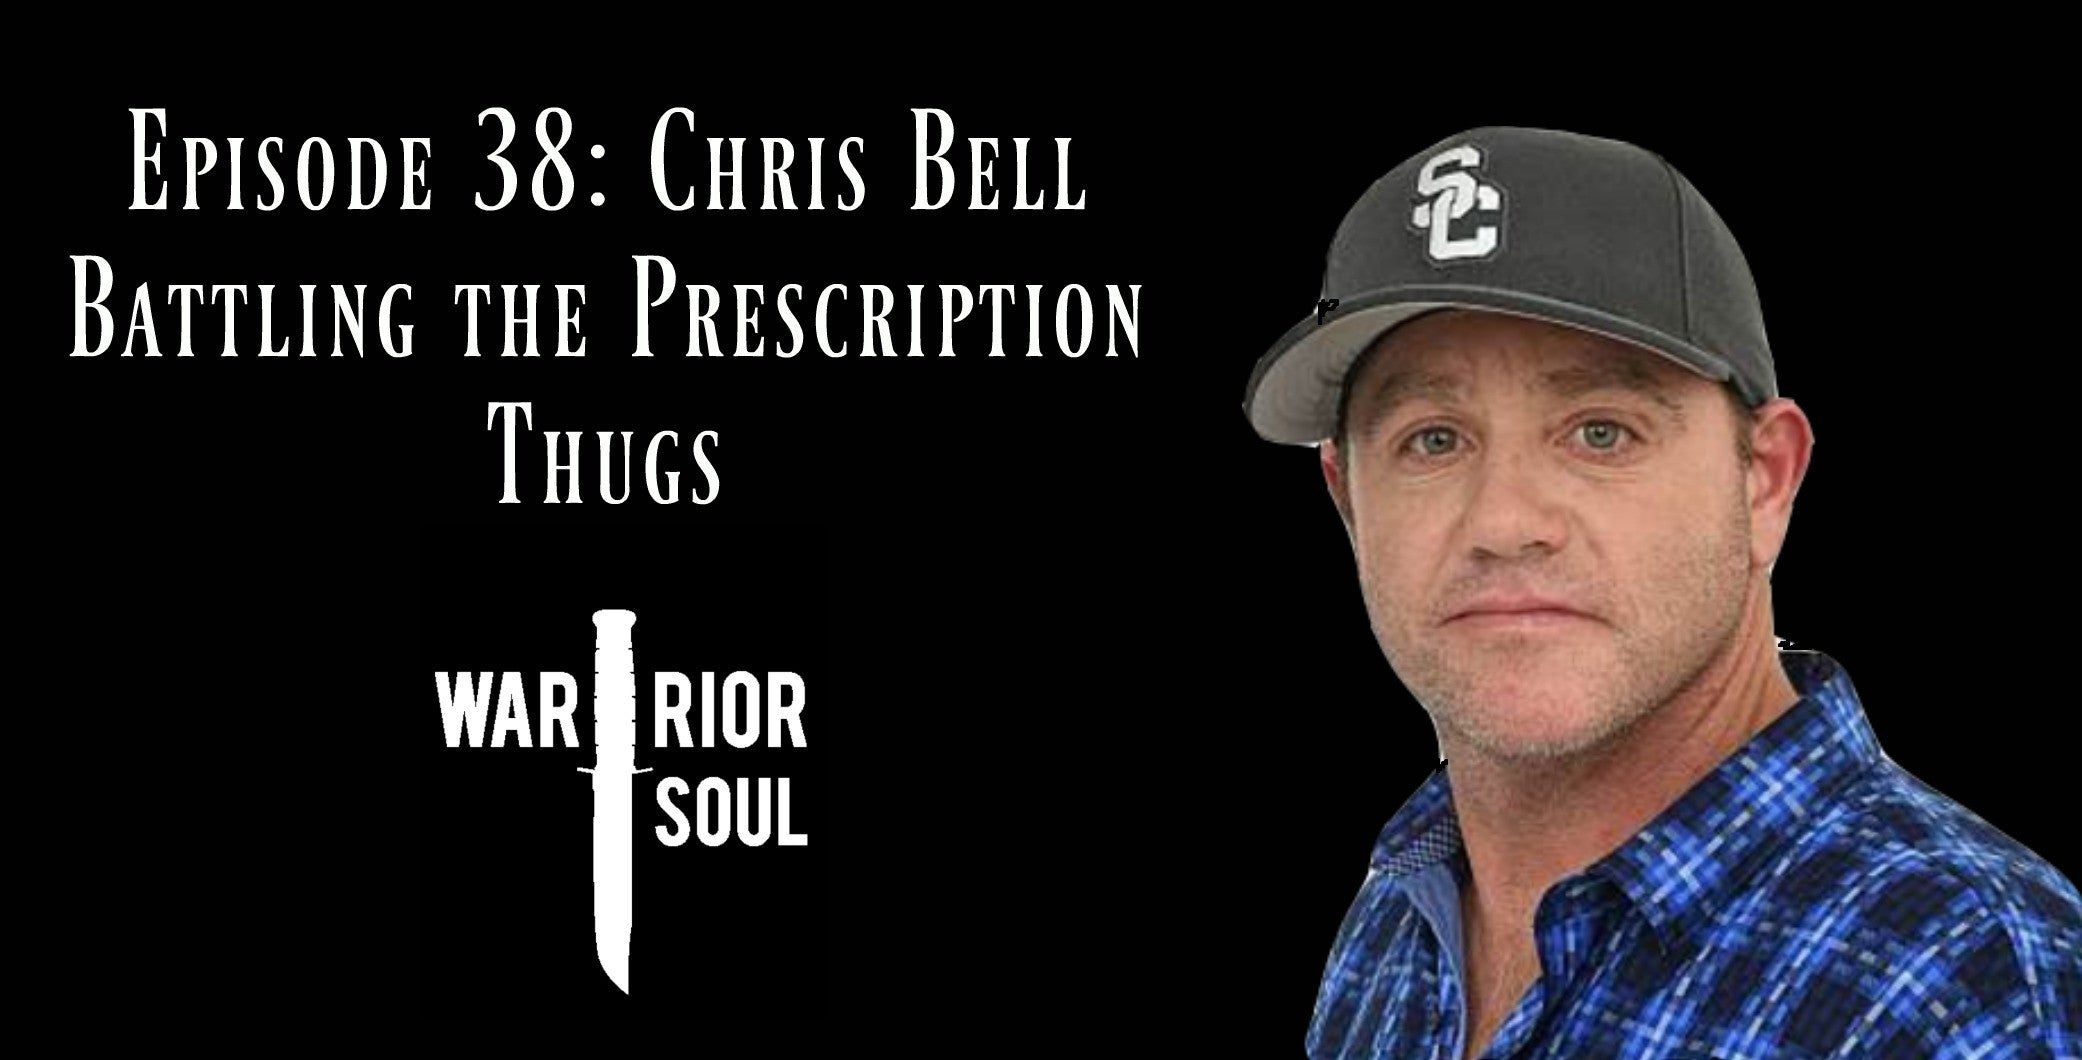 Episode 38: How Prescription Opiates are Killing Veterans with Film Maker Chris Bell